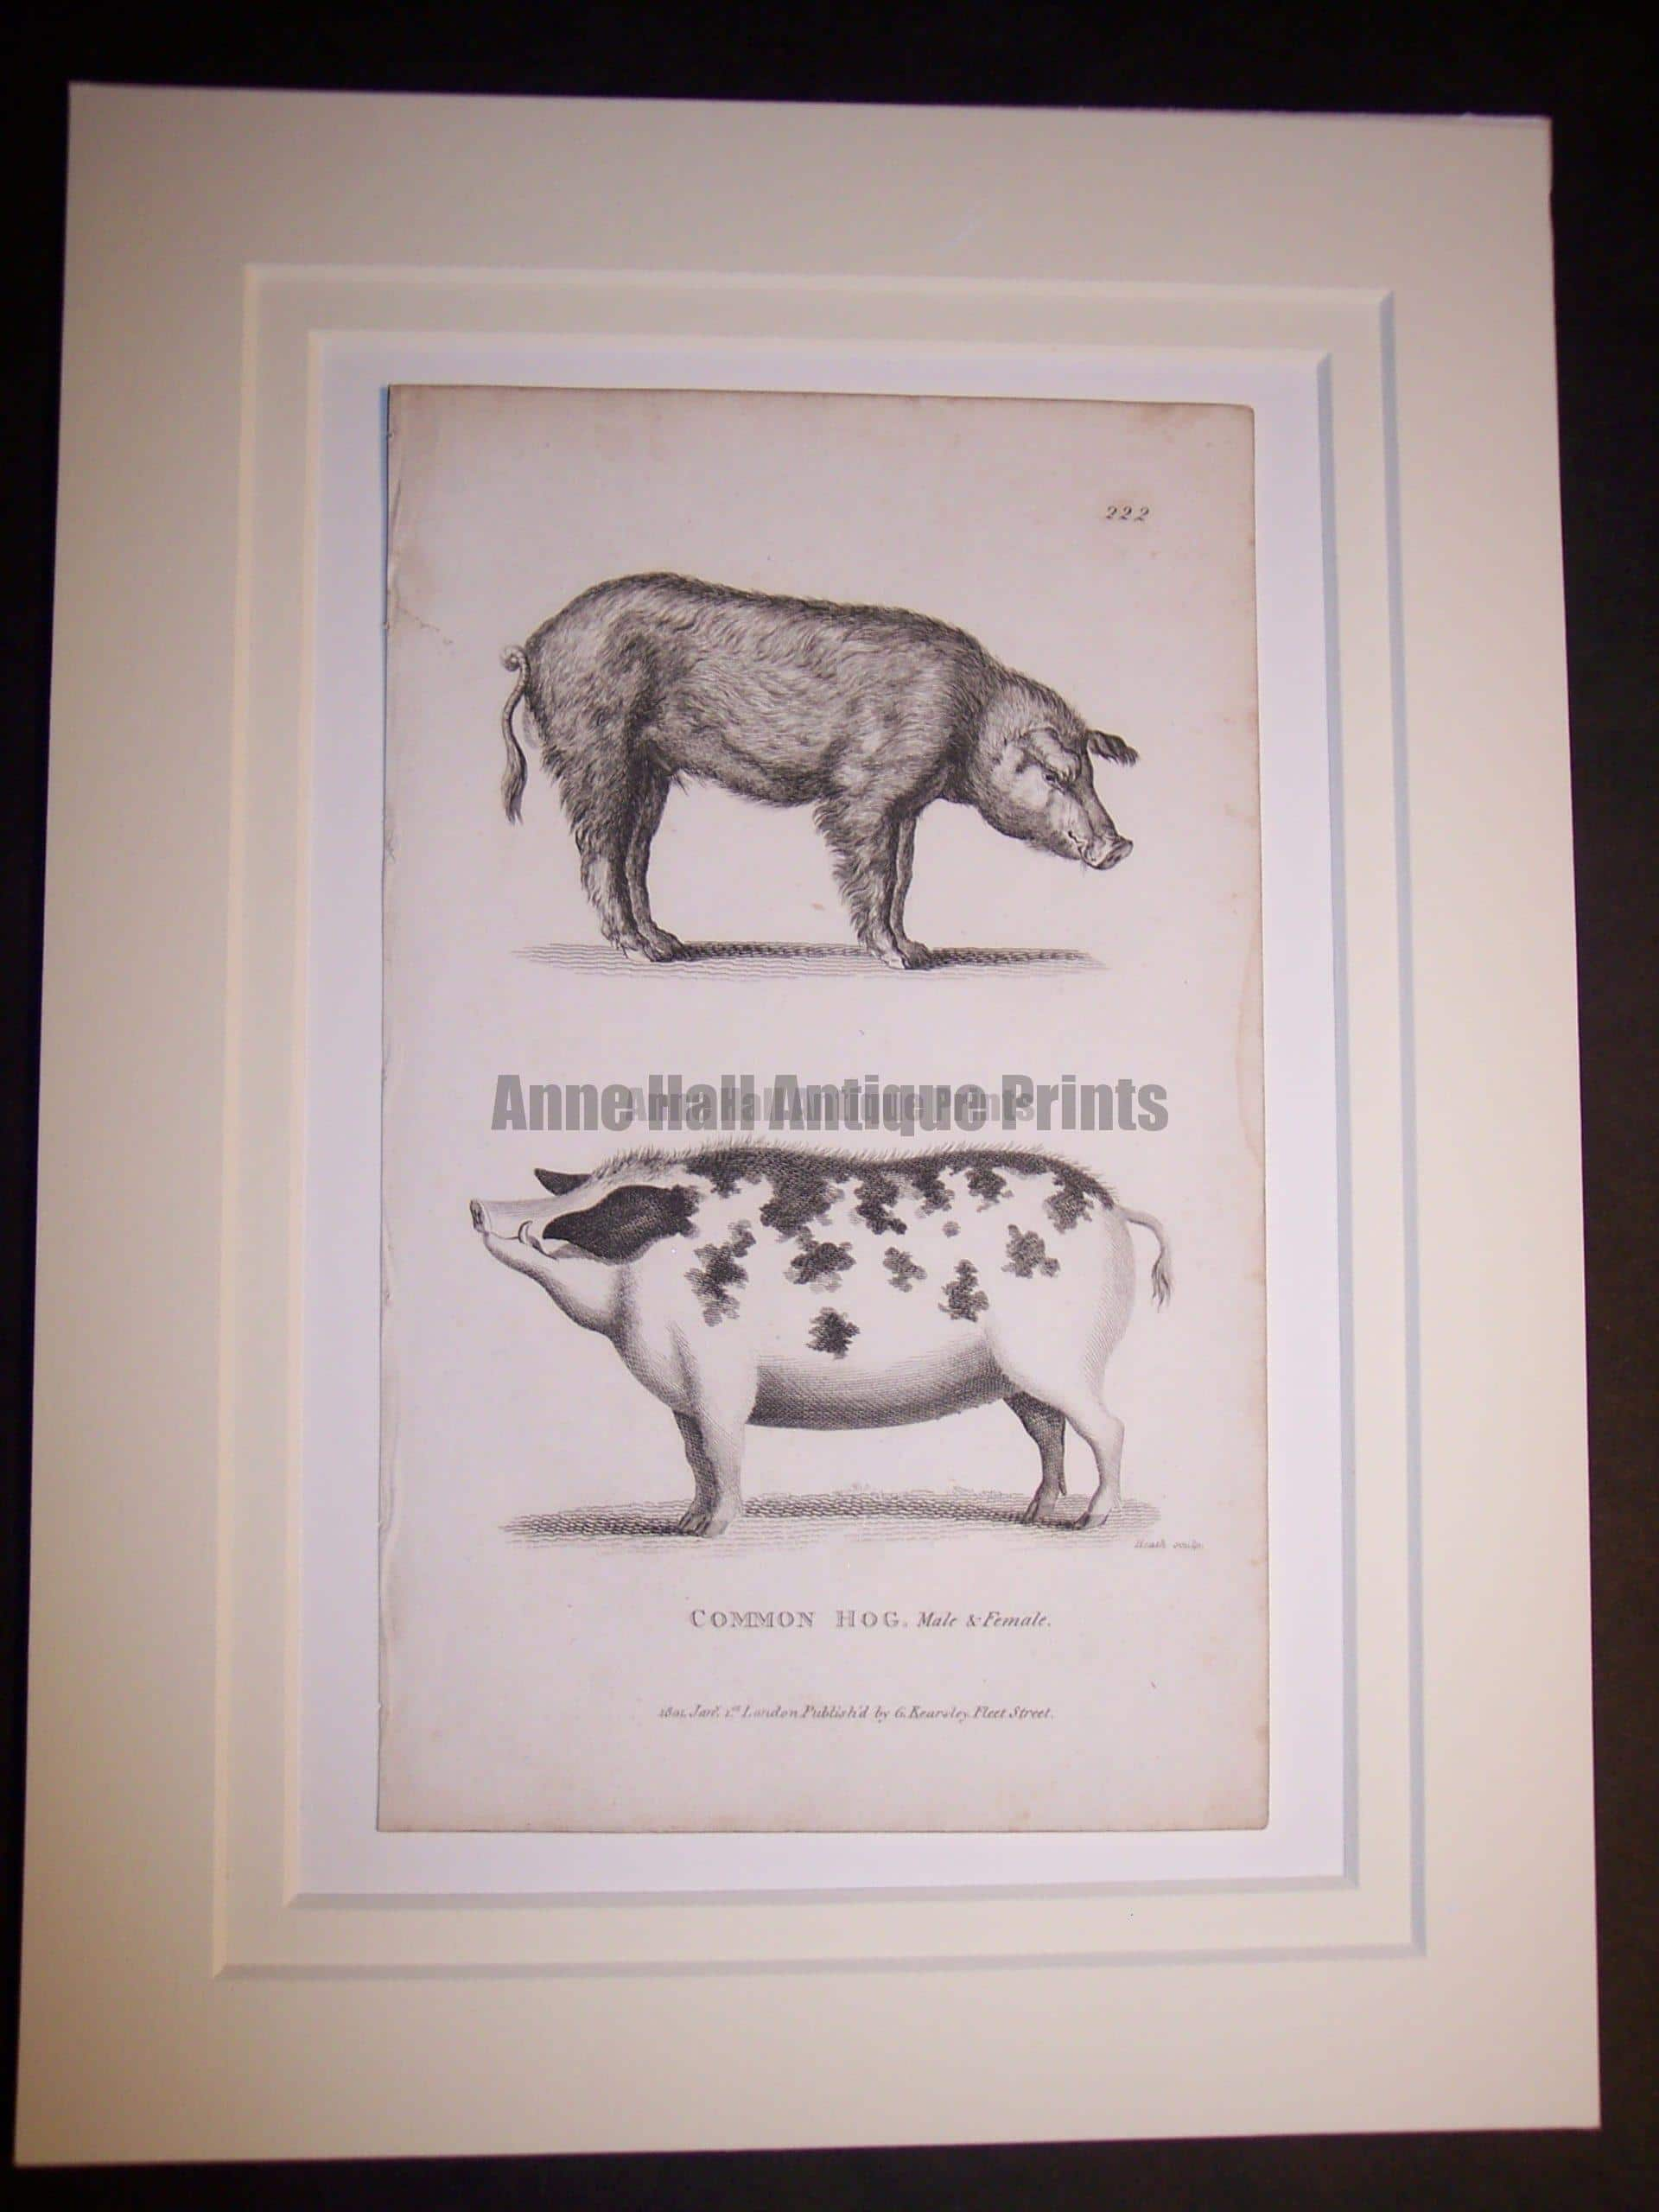 6102 Antique print of pigs from c.1800.